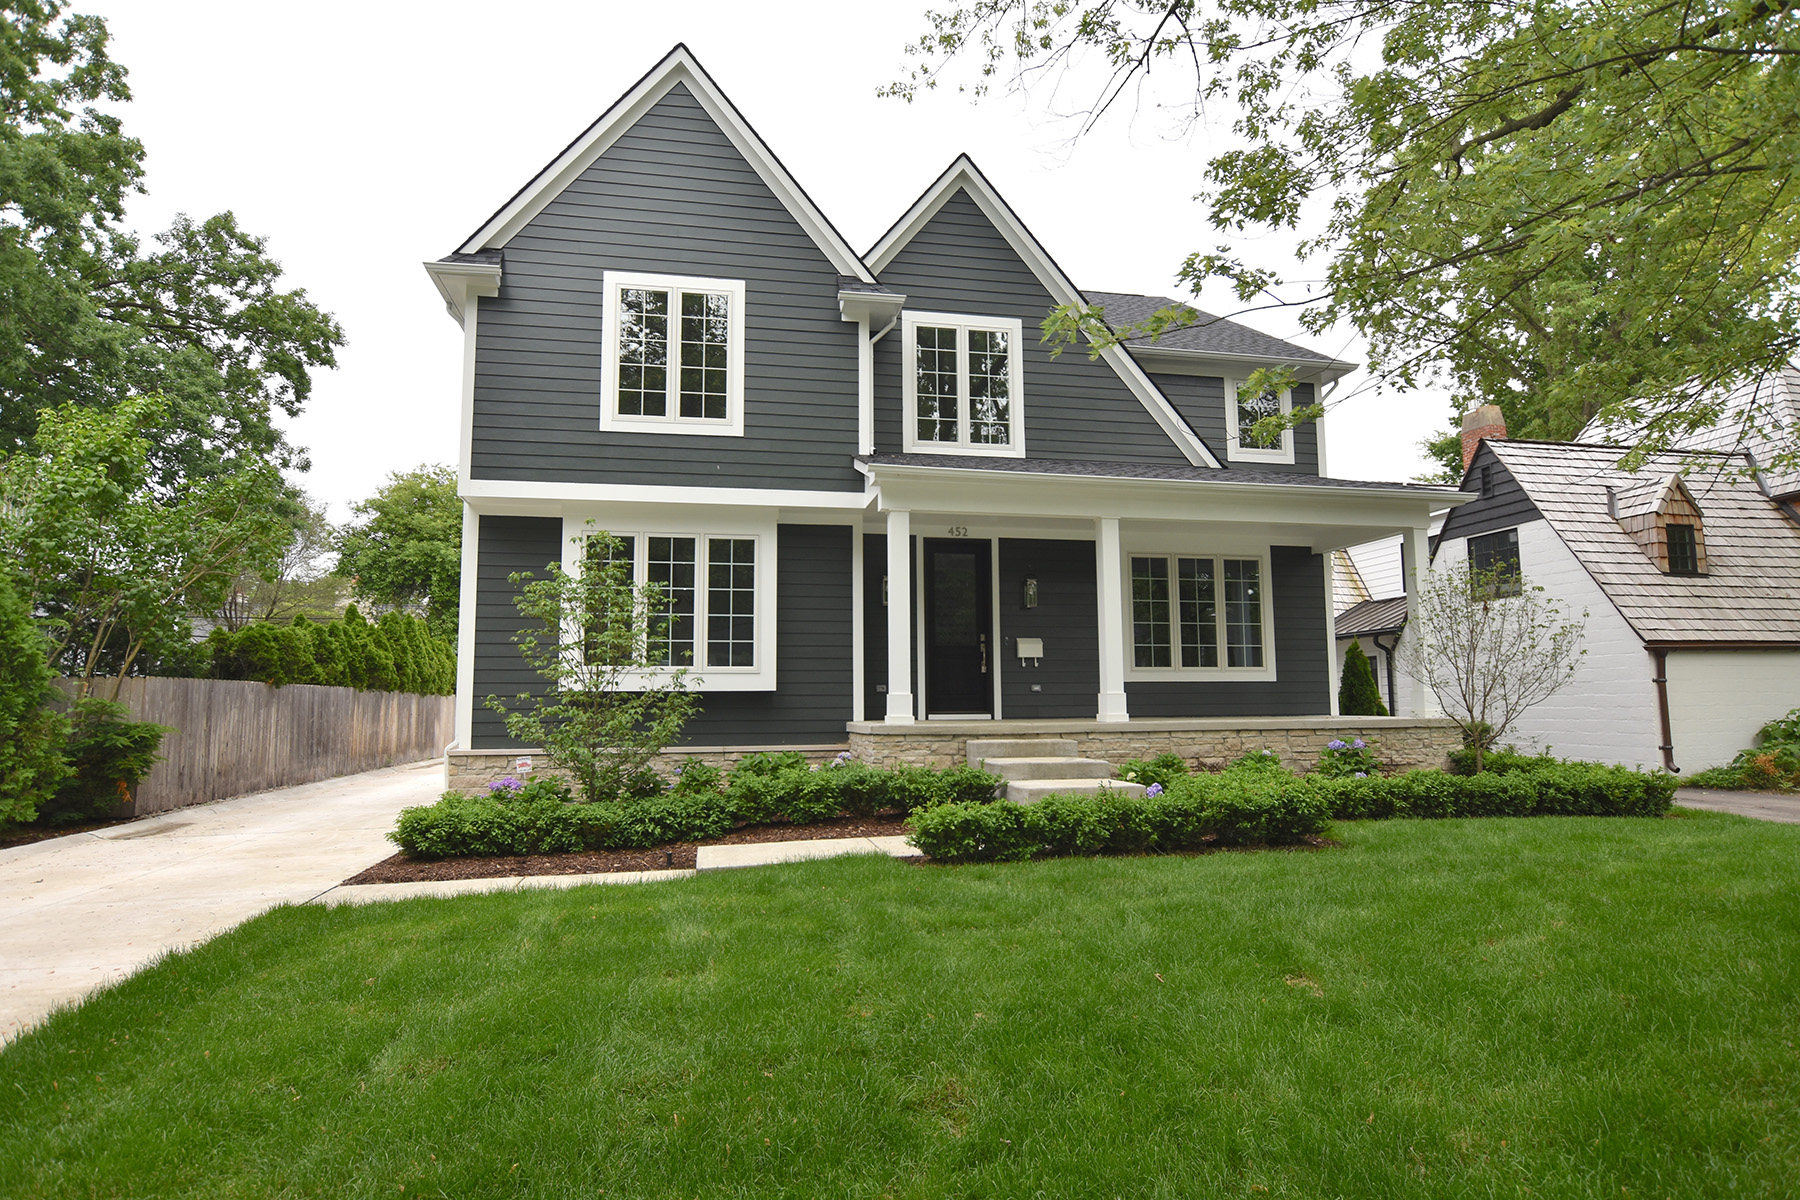 Single Family Homes for Active at Birmingham 452 Suffield Avenue Birmingham, Michigan 48009 United States